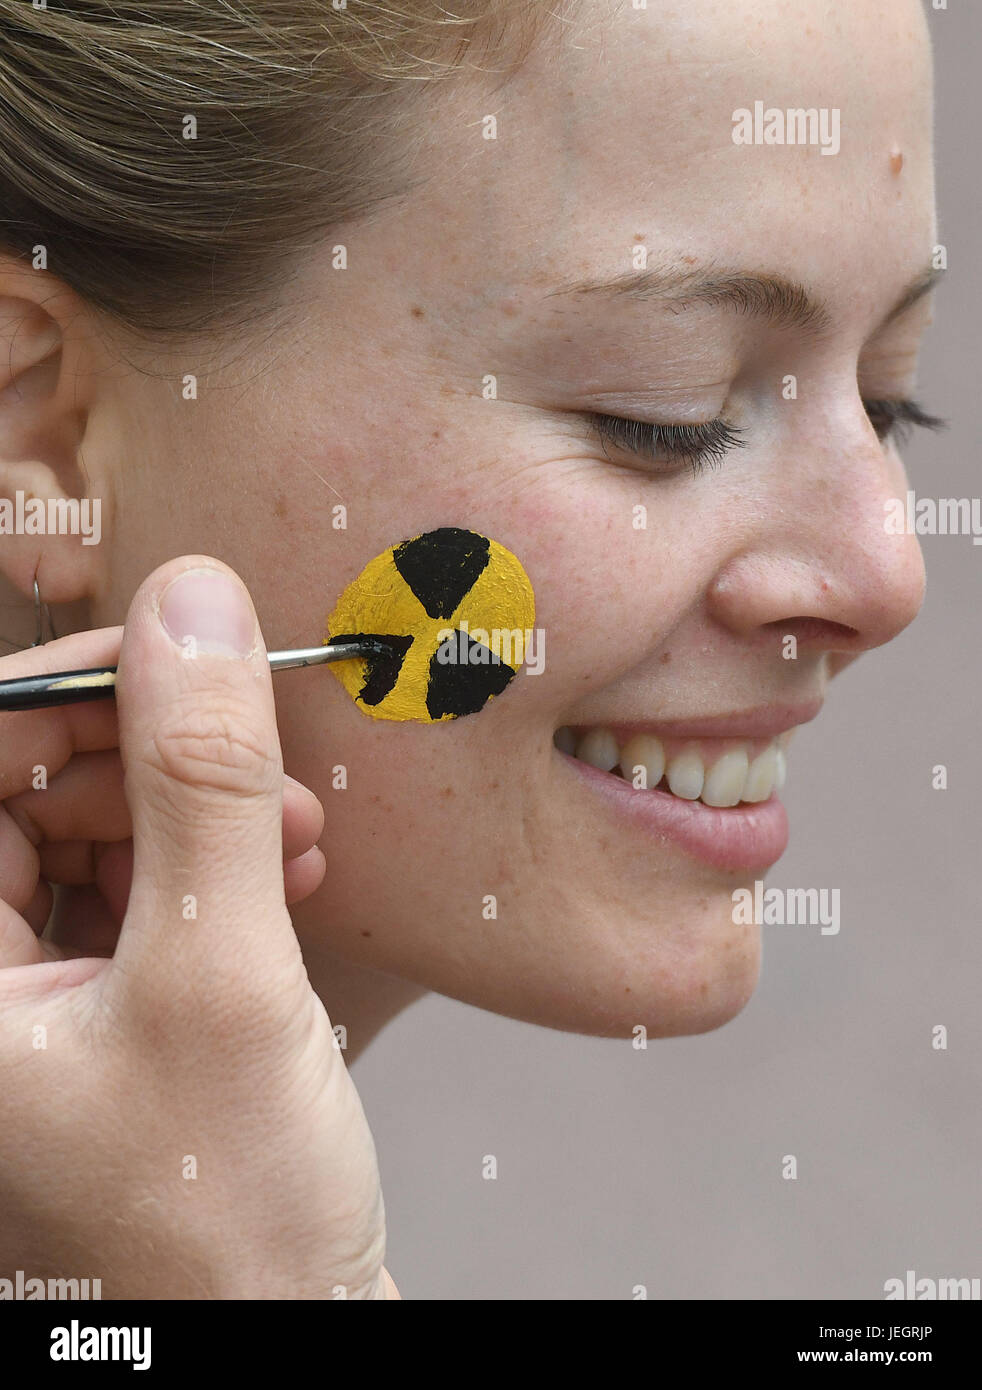 Aachen, Germany. 25th June, 2017. A participant in the protest has her cheek painted with a radiation symbol during - Stock Image